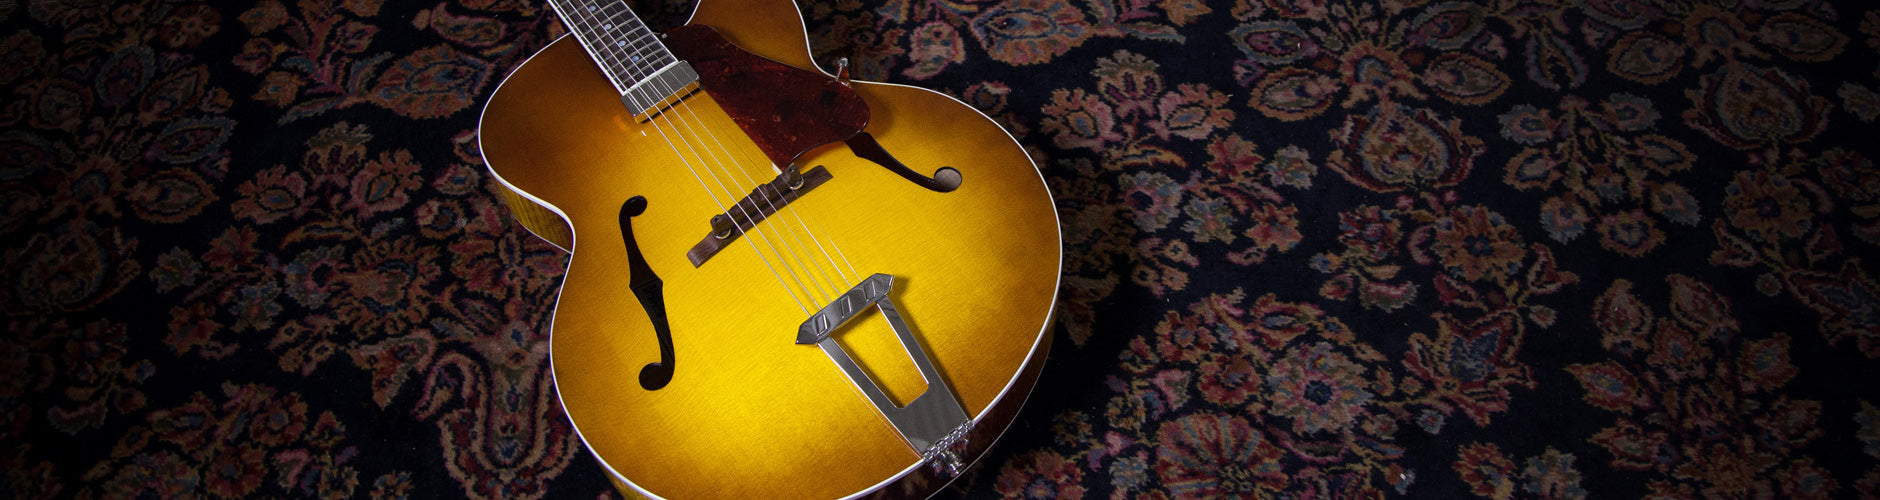 Gibson Archtop Guitars At The Music Zoo